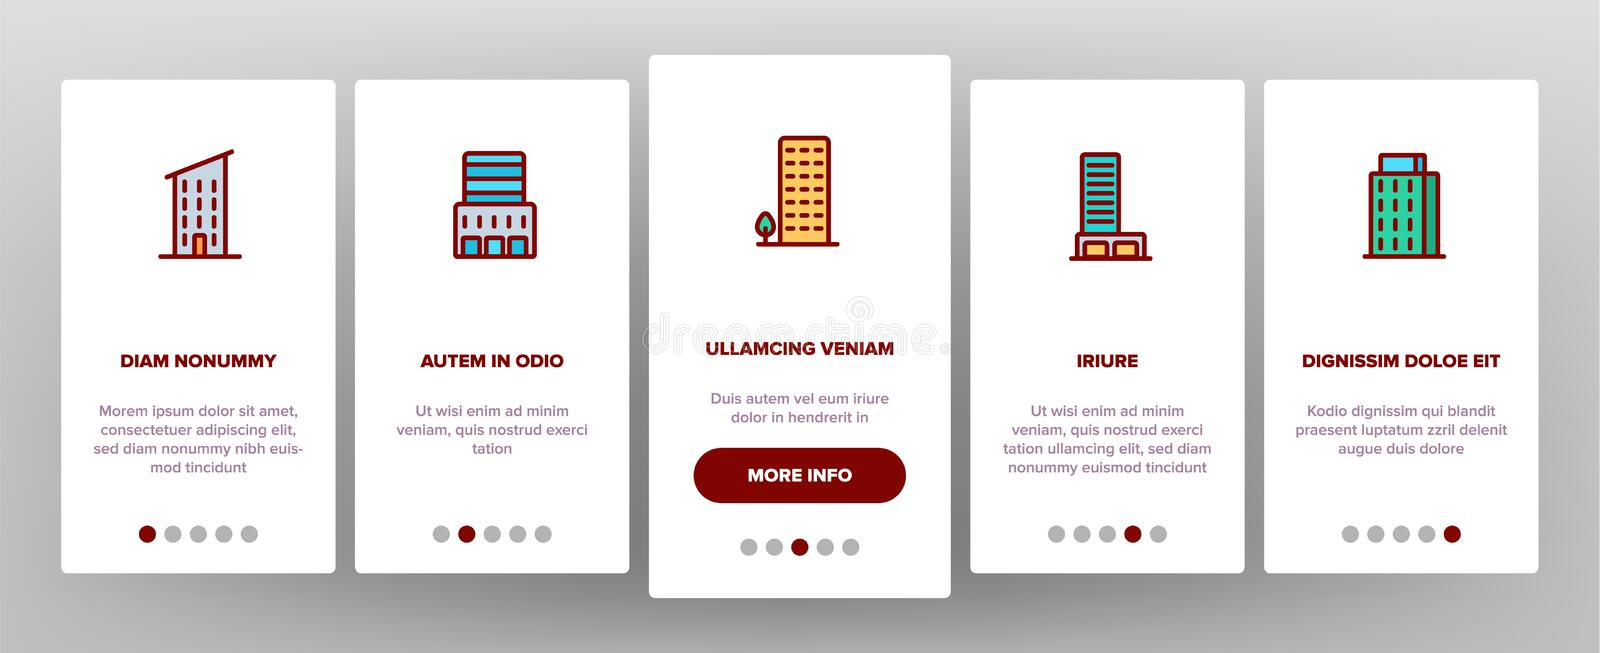 Dwelling House, Condo Vector Onboarding Mobile App Page Screen. Dwelling House, Condo Onboarding Mobile App Page Screen Vector. Condo, Apartment Buildings royalty free illustration